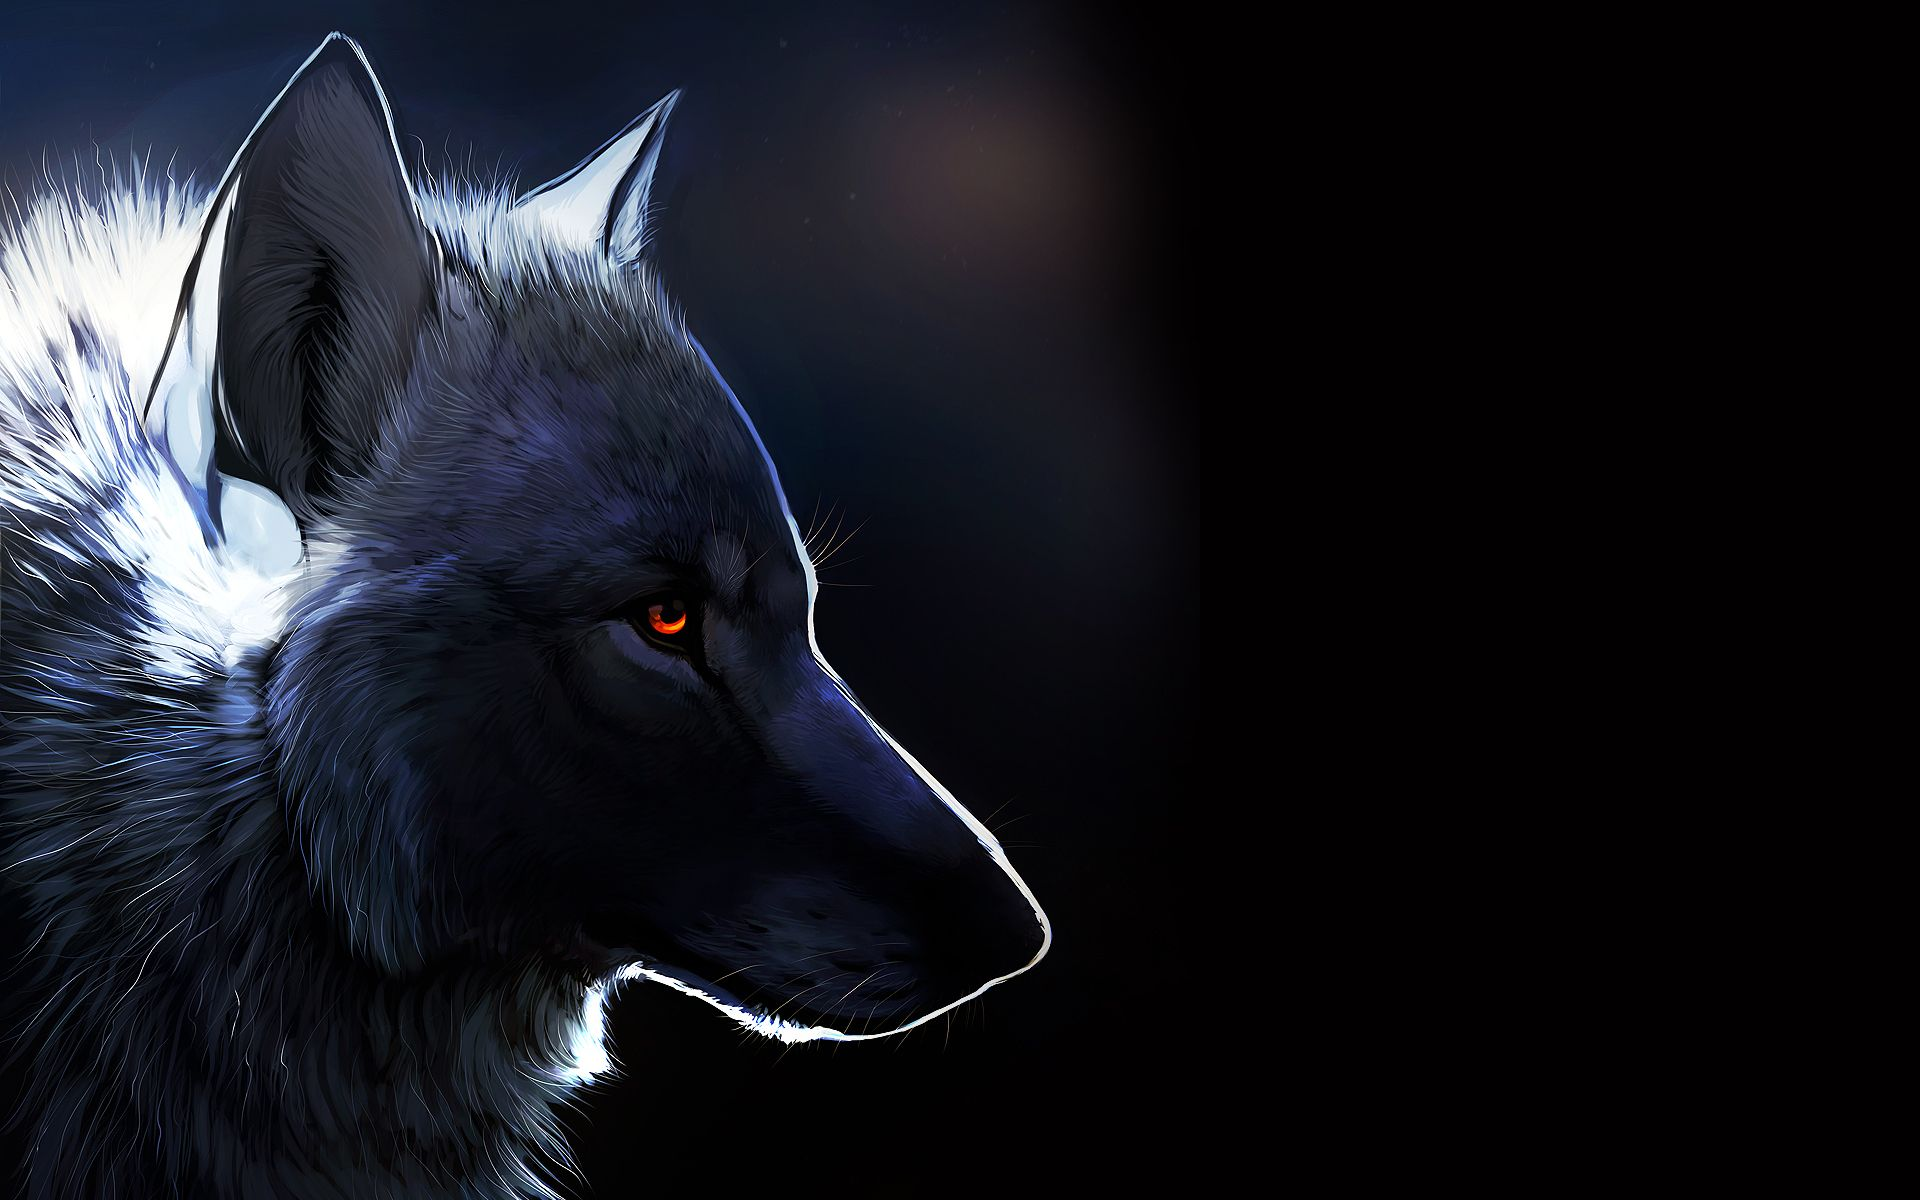 Black Background Wolf Amber Eyes Http Www Mindblowingpicture Com Wallpapers Amber Eyes Wpjfad95 Html Wolf Gatos Selvagens Cao Desenho